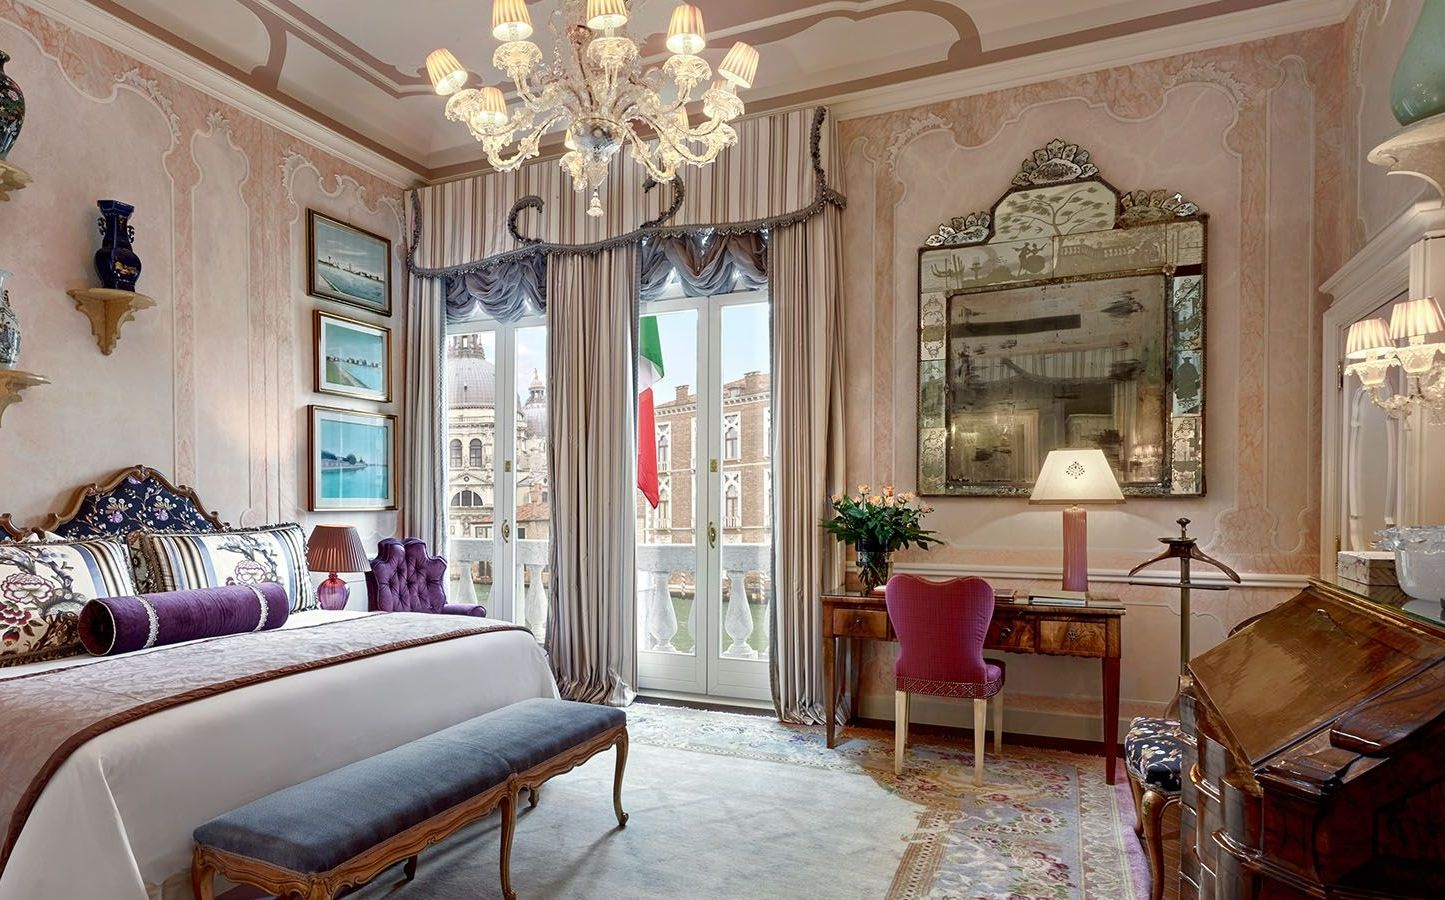 Somerset Maugham Royal Suite, The Gritti Palace, Venice